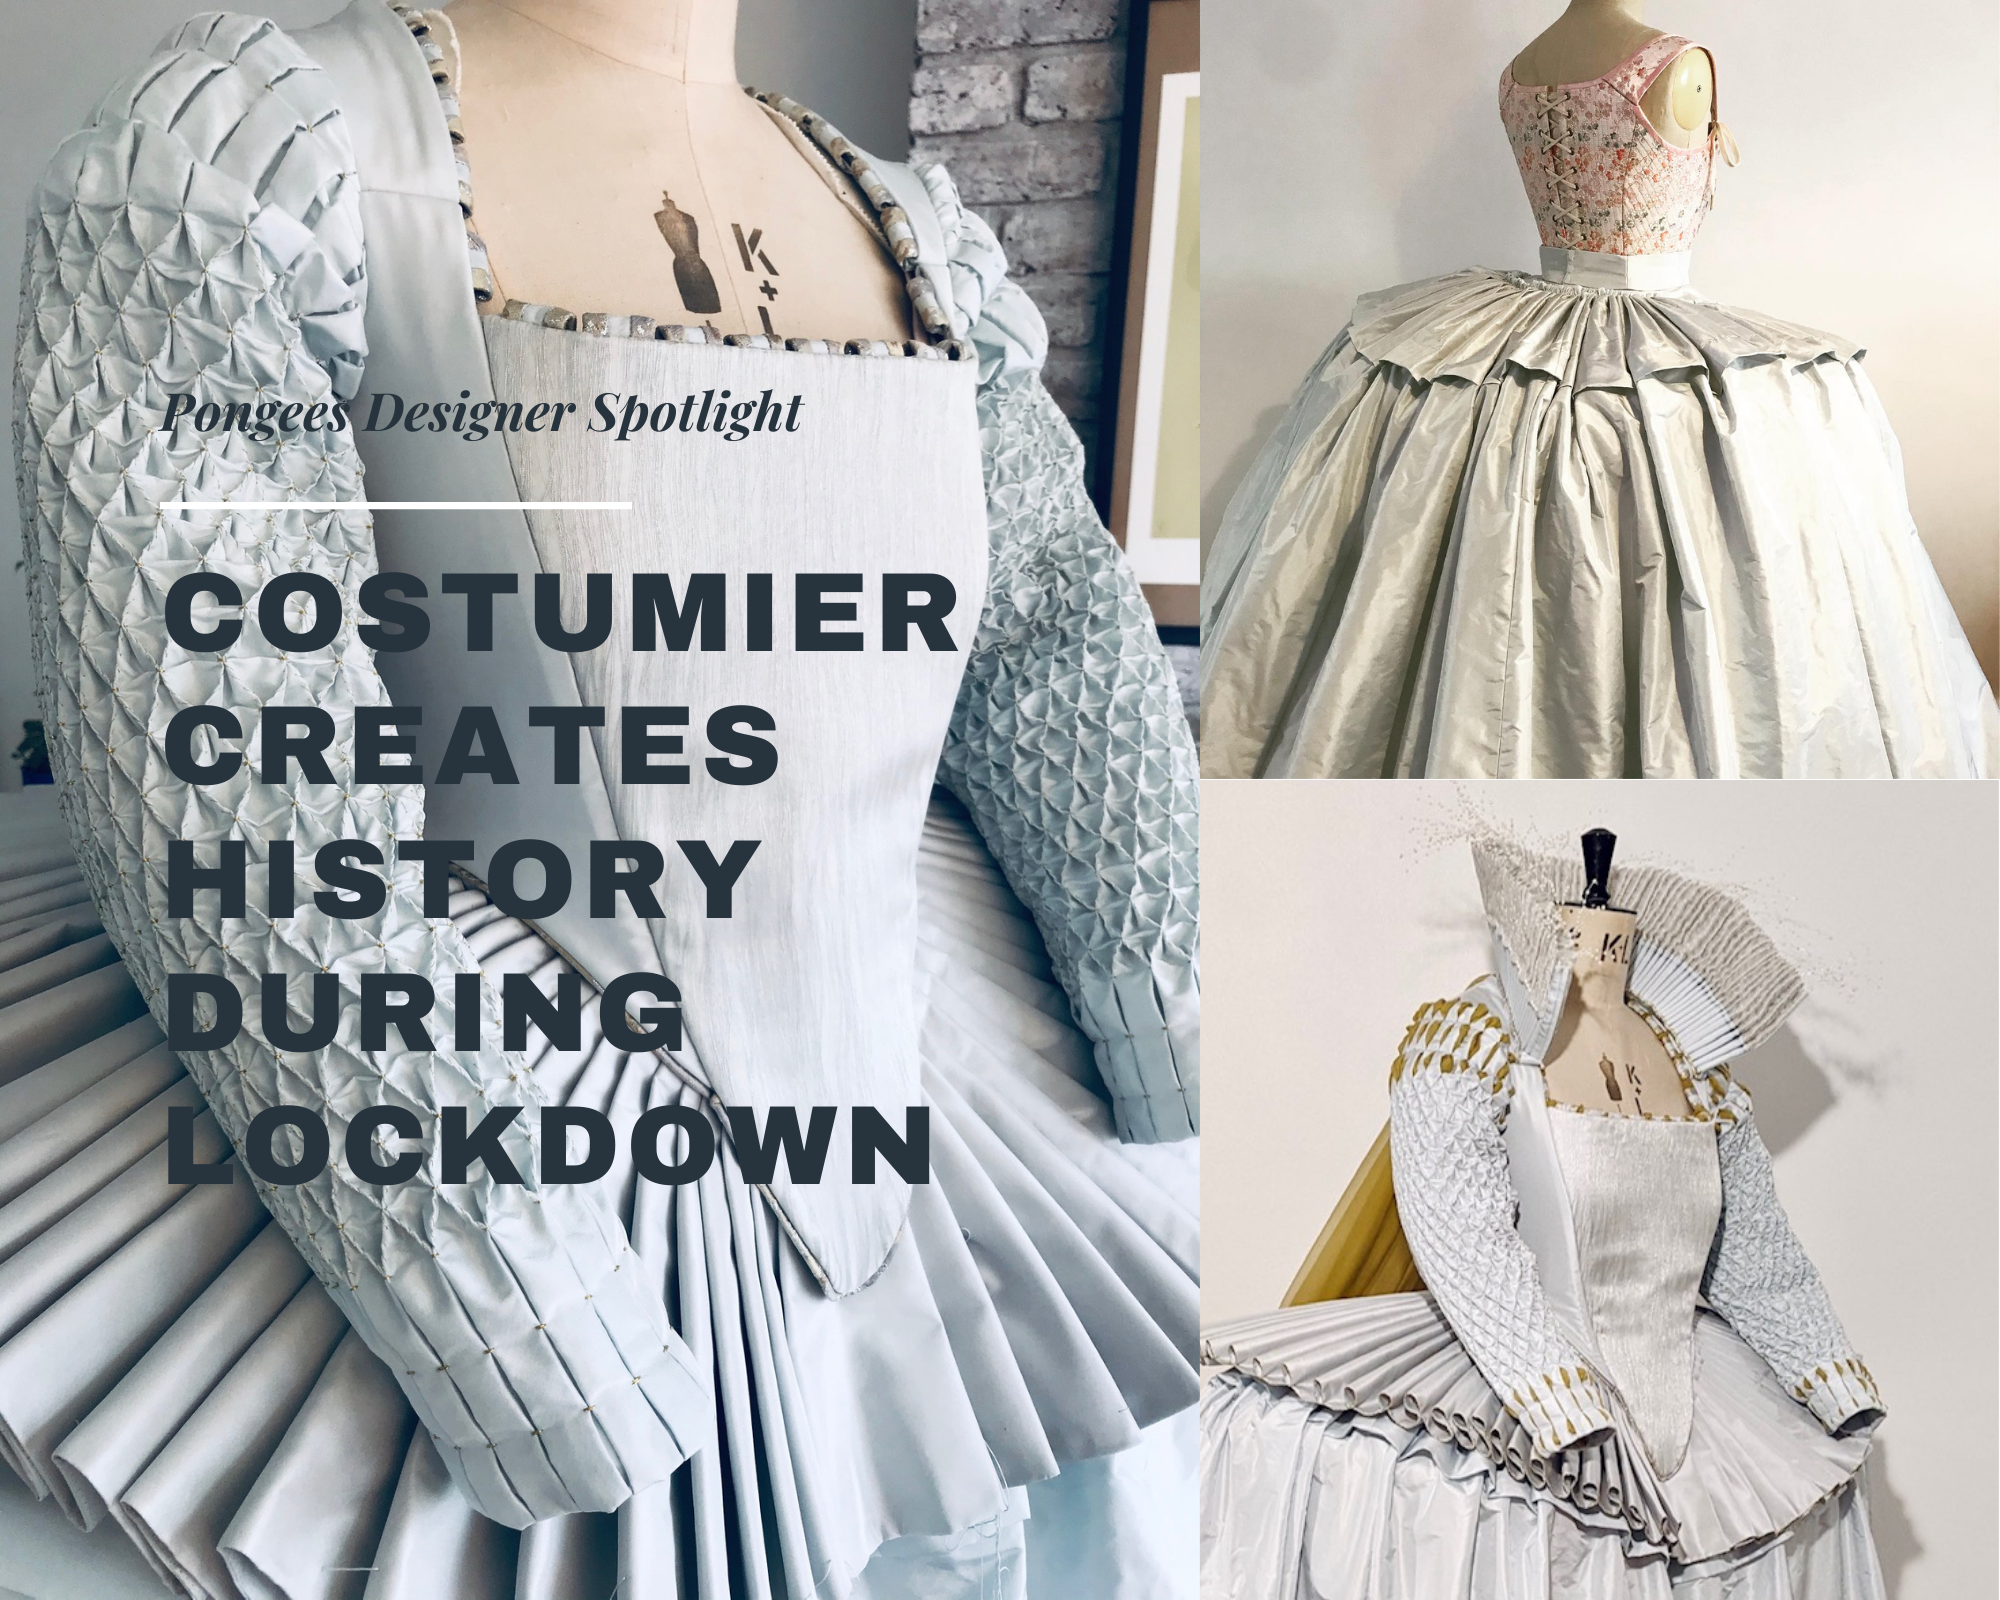 Costumier creates history during lockdown